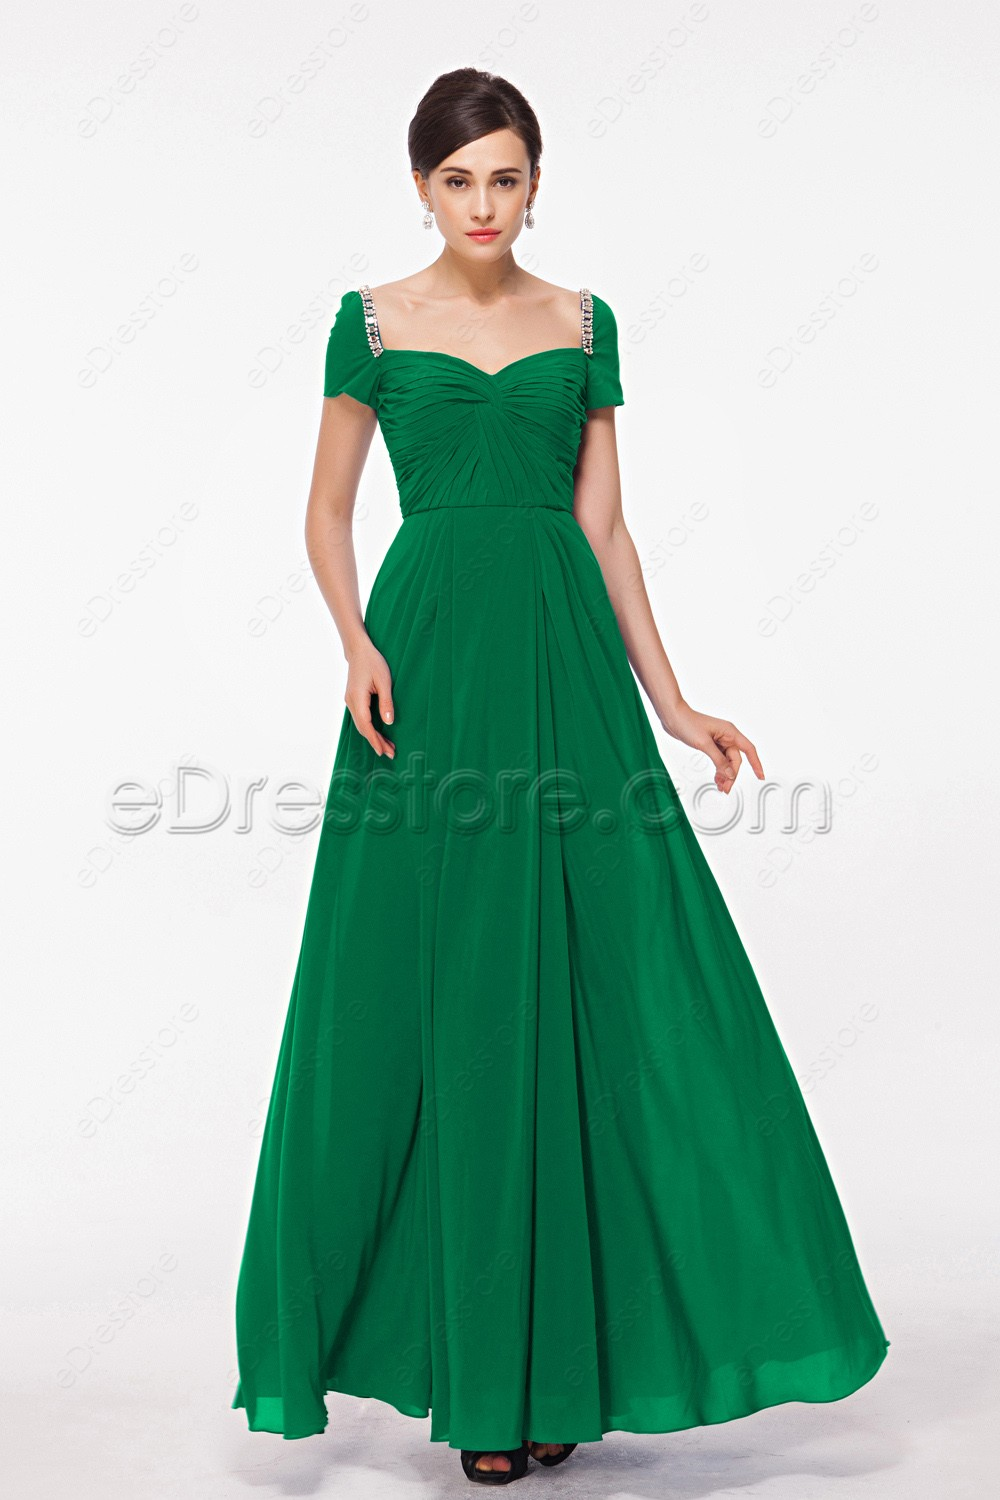 modest emerald green evening dress with sleeves